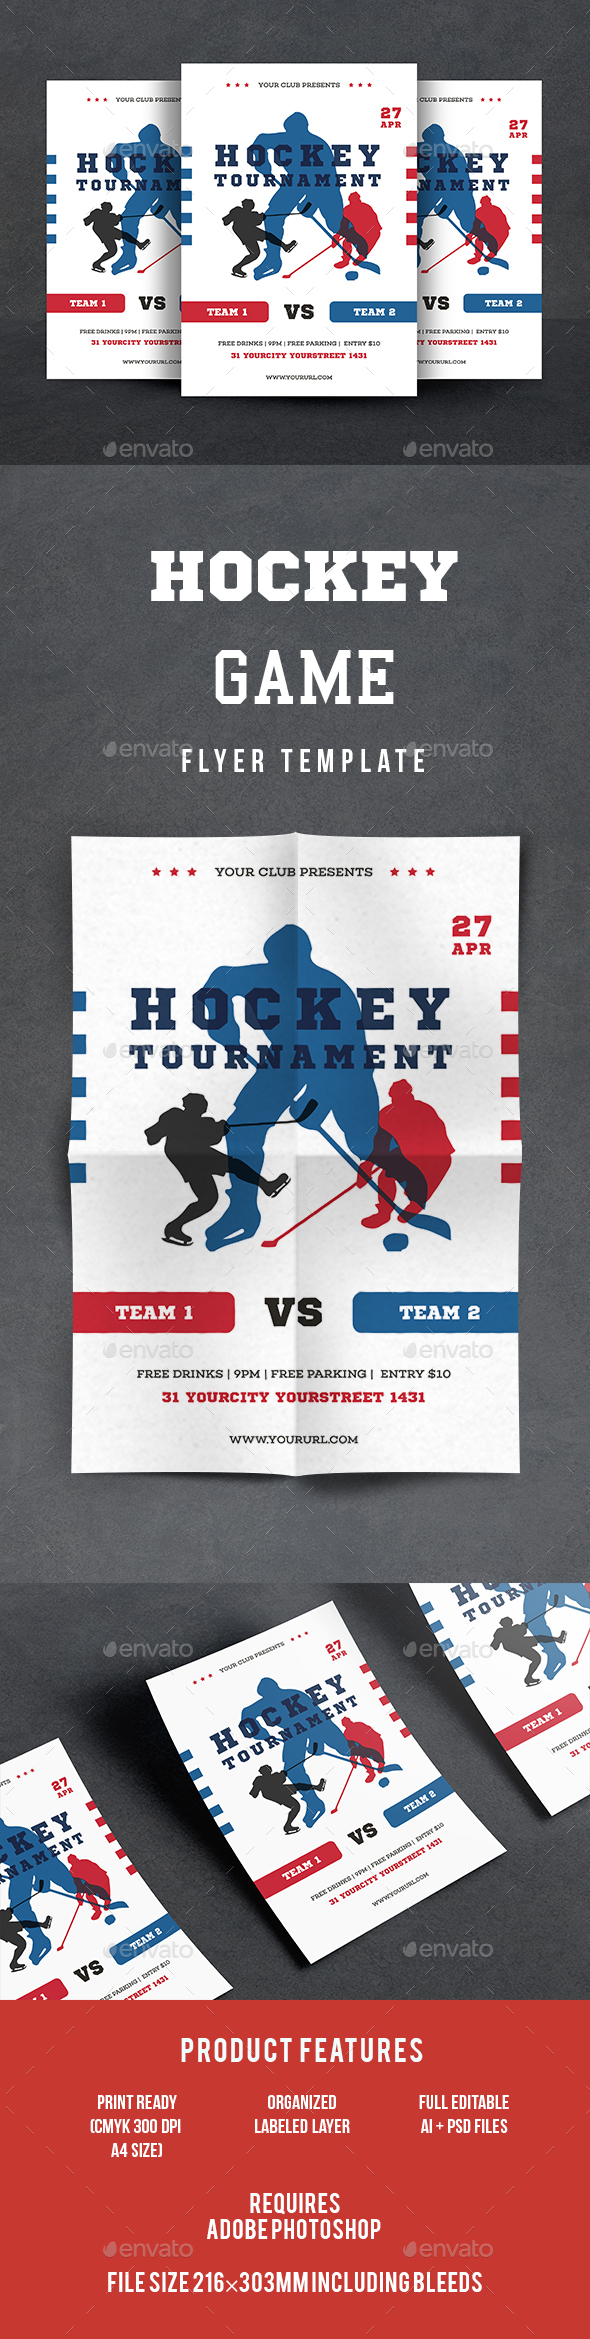 Hockey tournament graphics designs templates maxwellsz